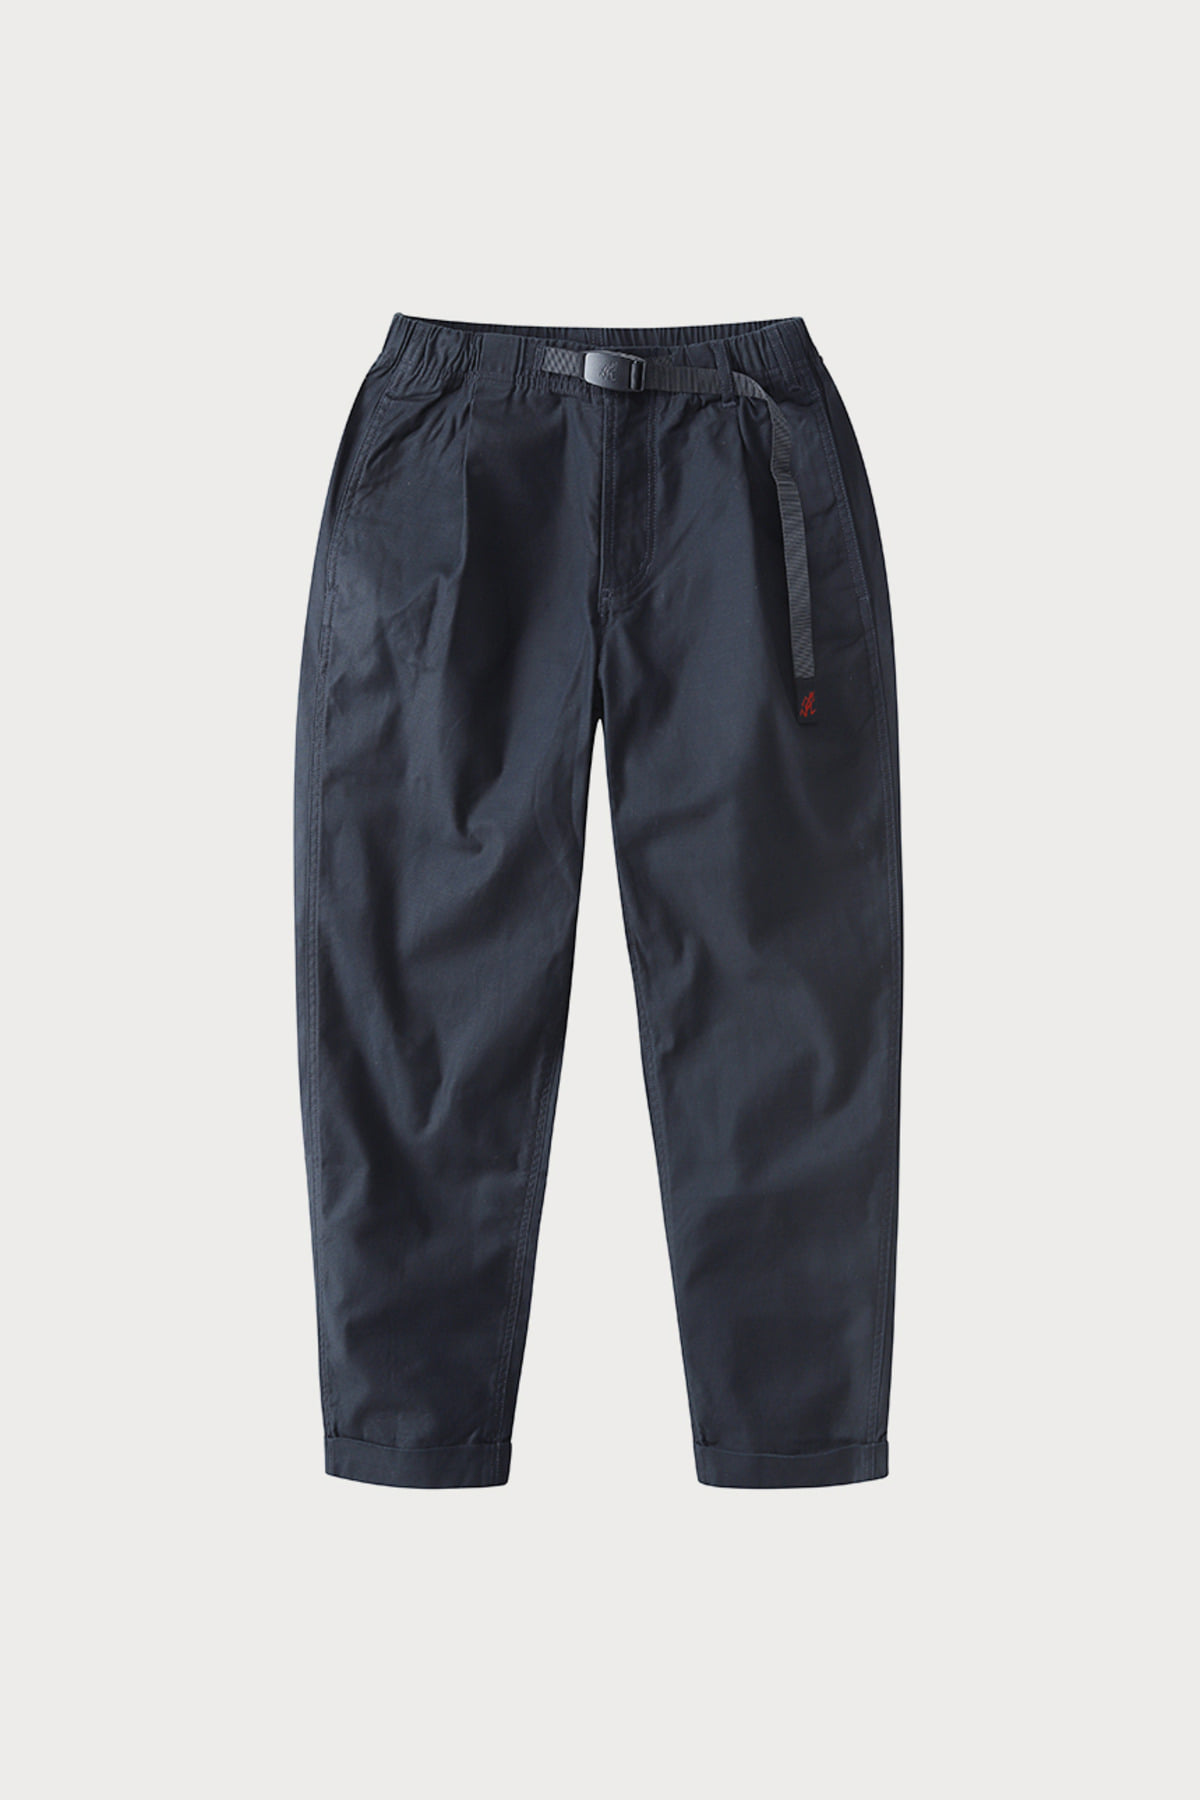 BACK SATIN TUCK TAPERED PANTS DOUBLE NAVY